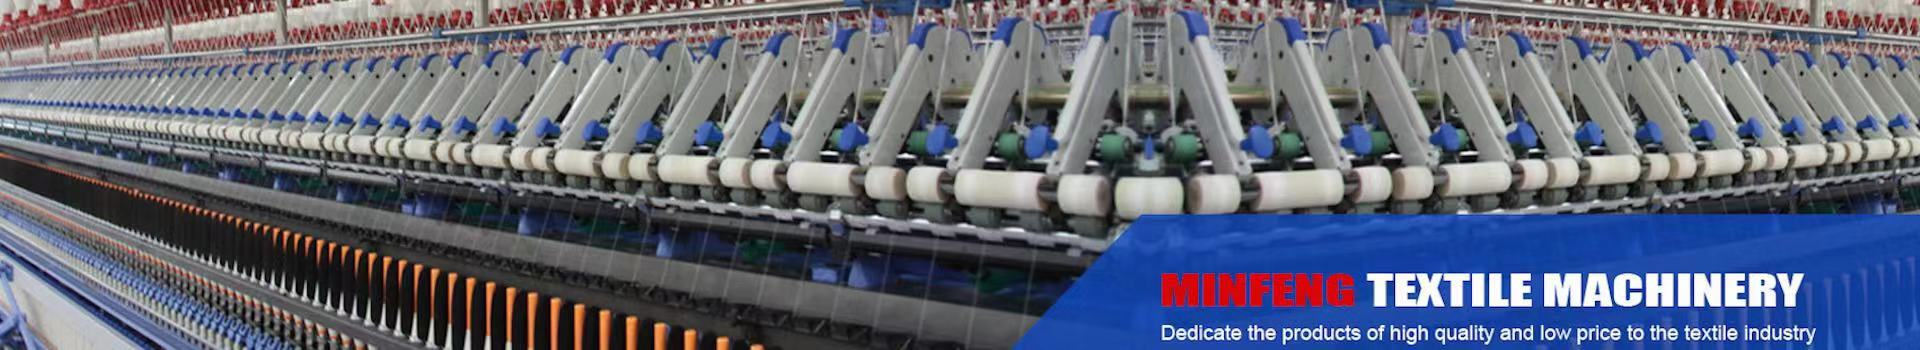 YUYAO MINFENG TEXTILE MACHINERY CO., LTD.